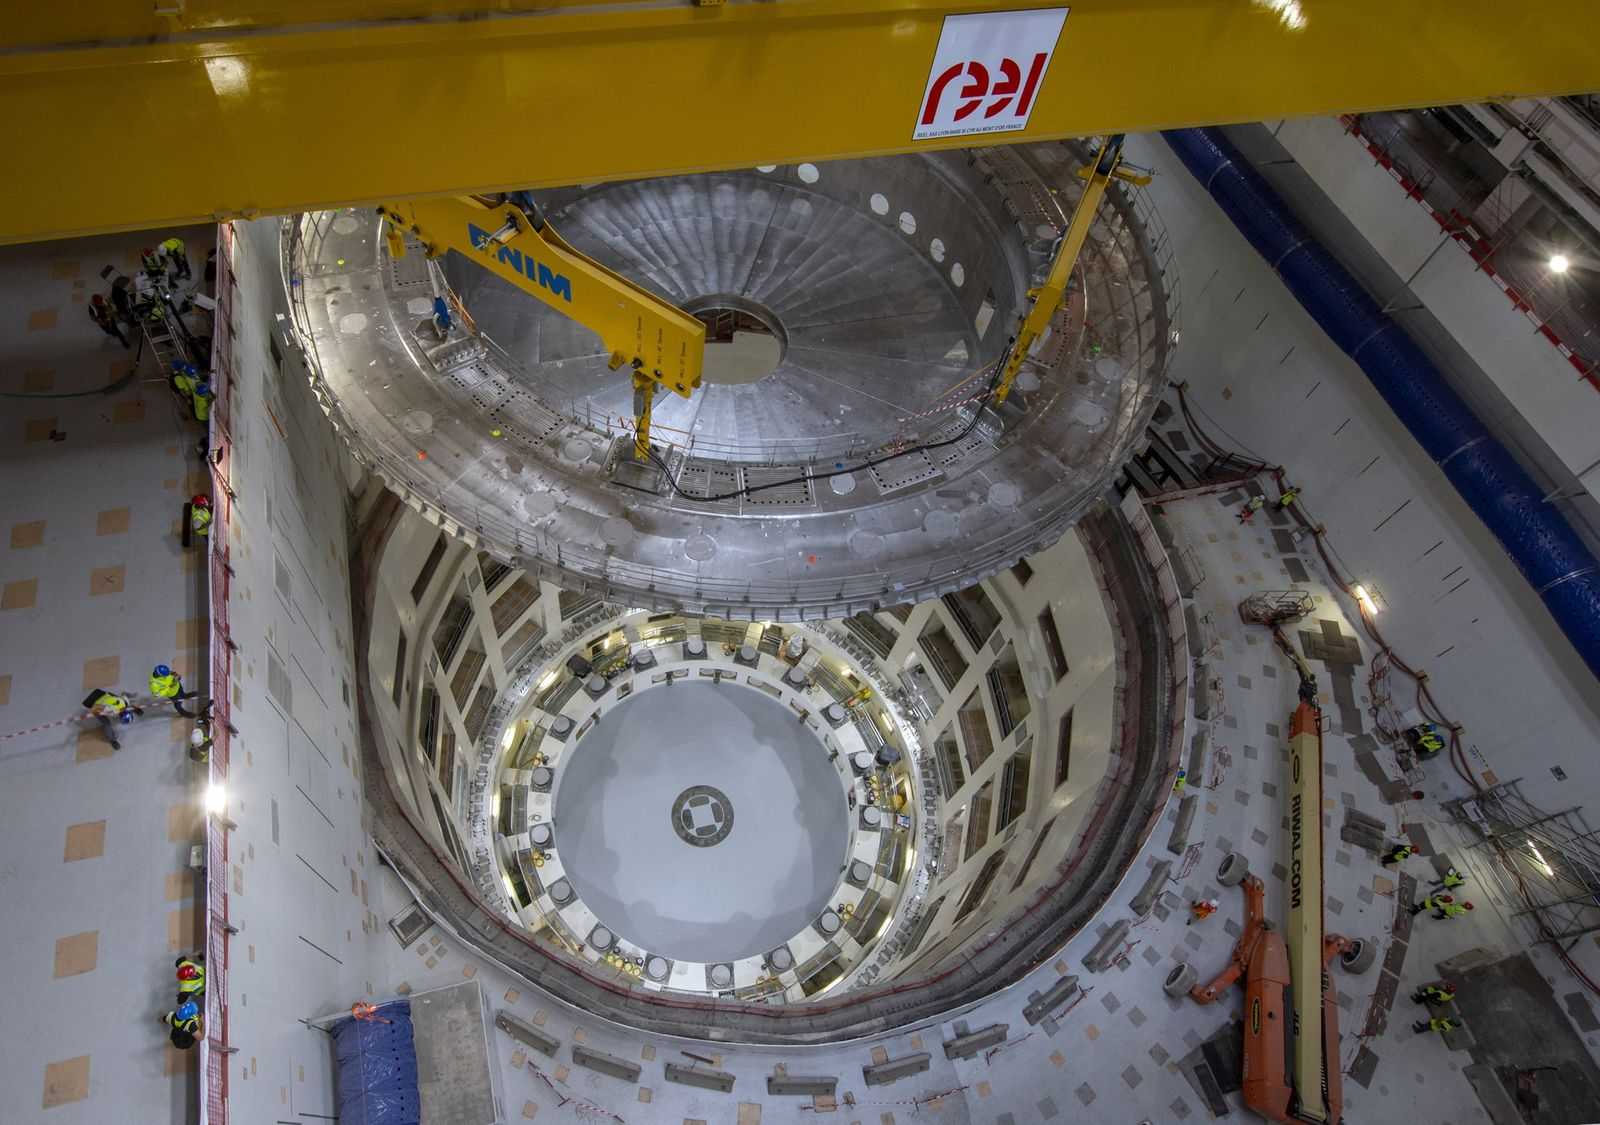 Cranes lift ITER?s cryostat base into the tokamak pit to begin reactor assembly.